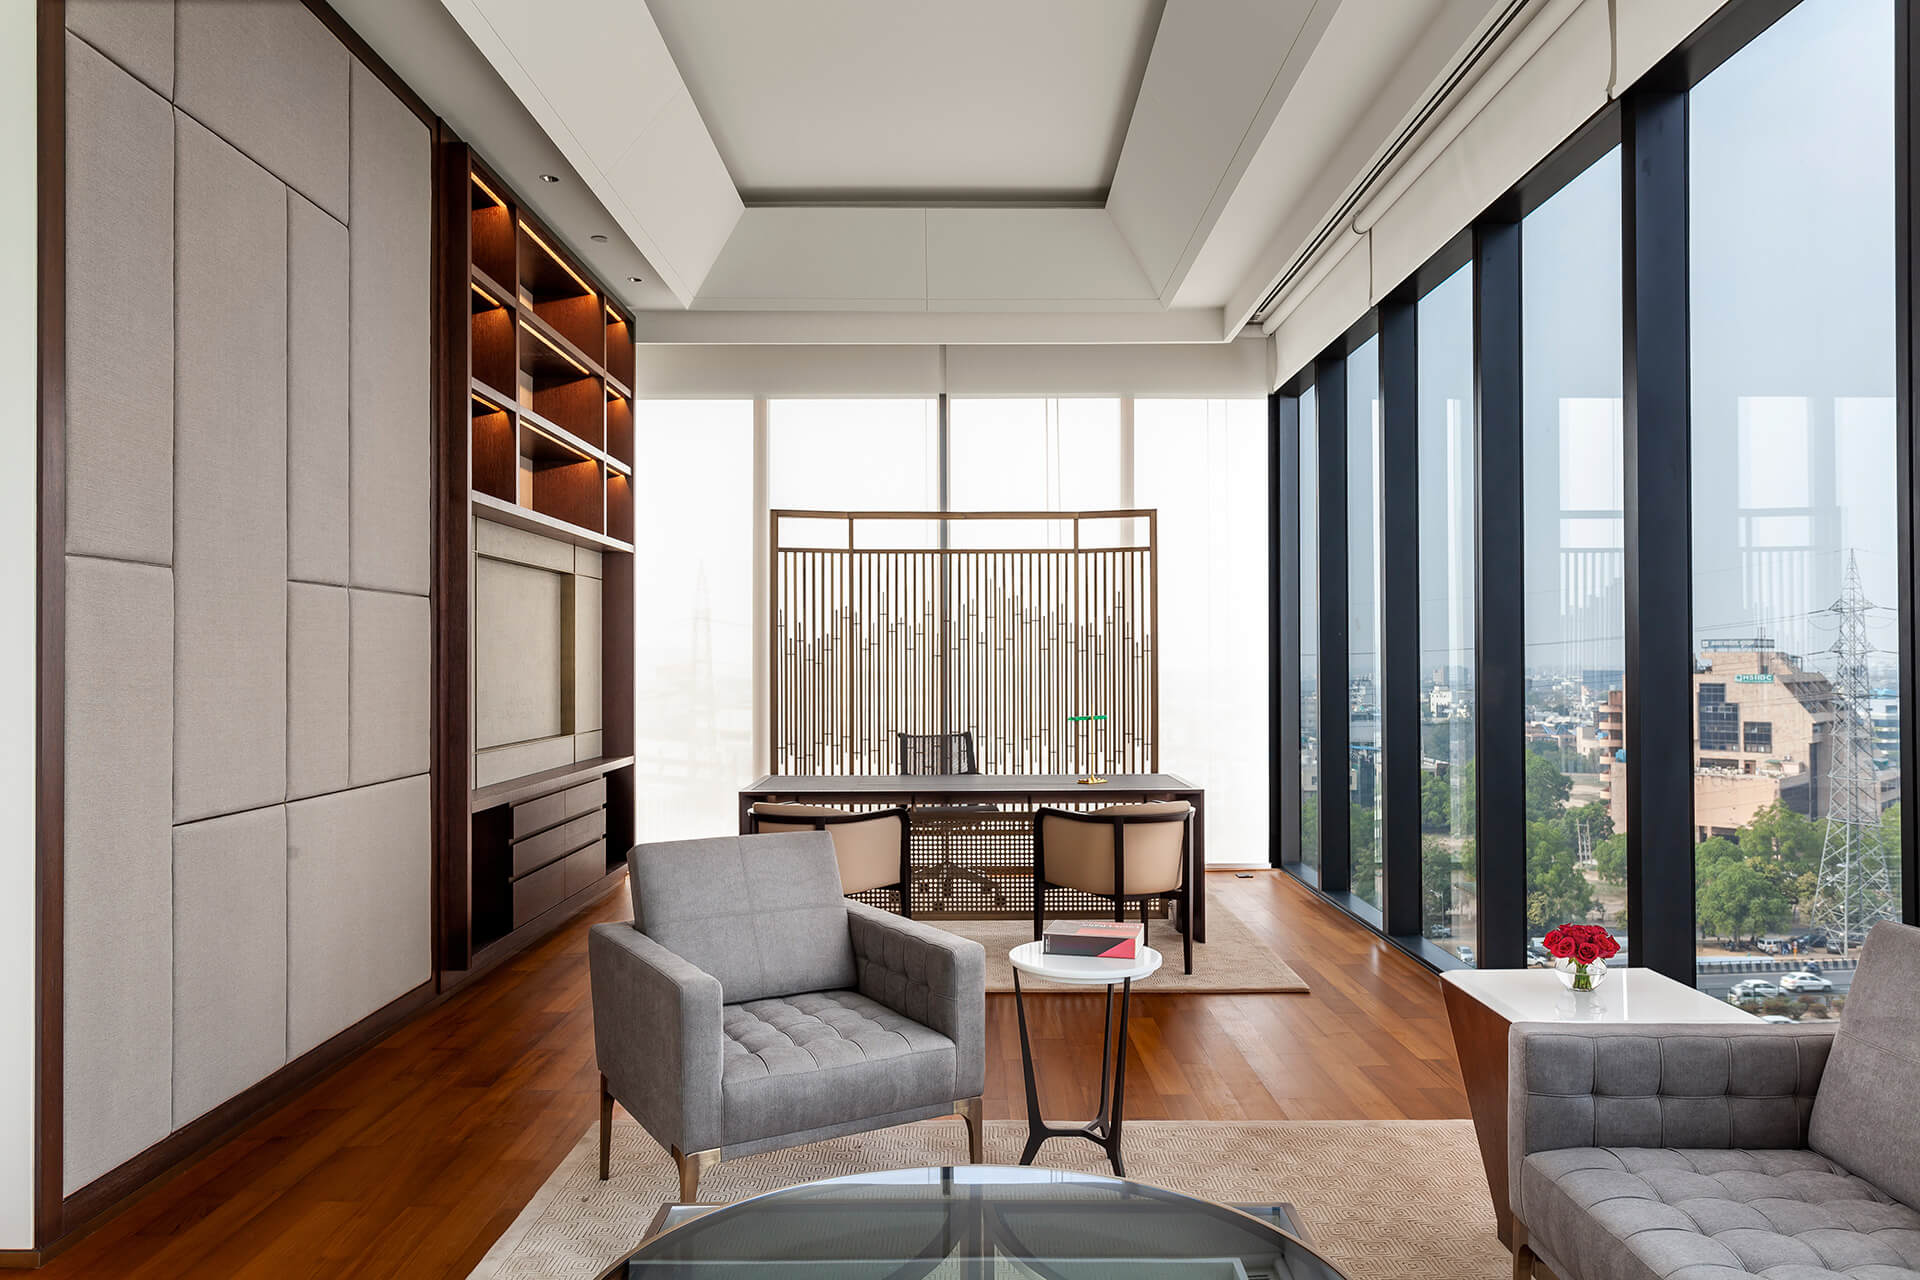 The Chairman's Cabin | East India Hotels headquarters by Architecture Discipline | STIRworld